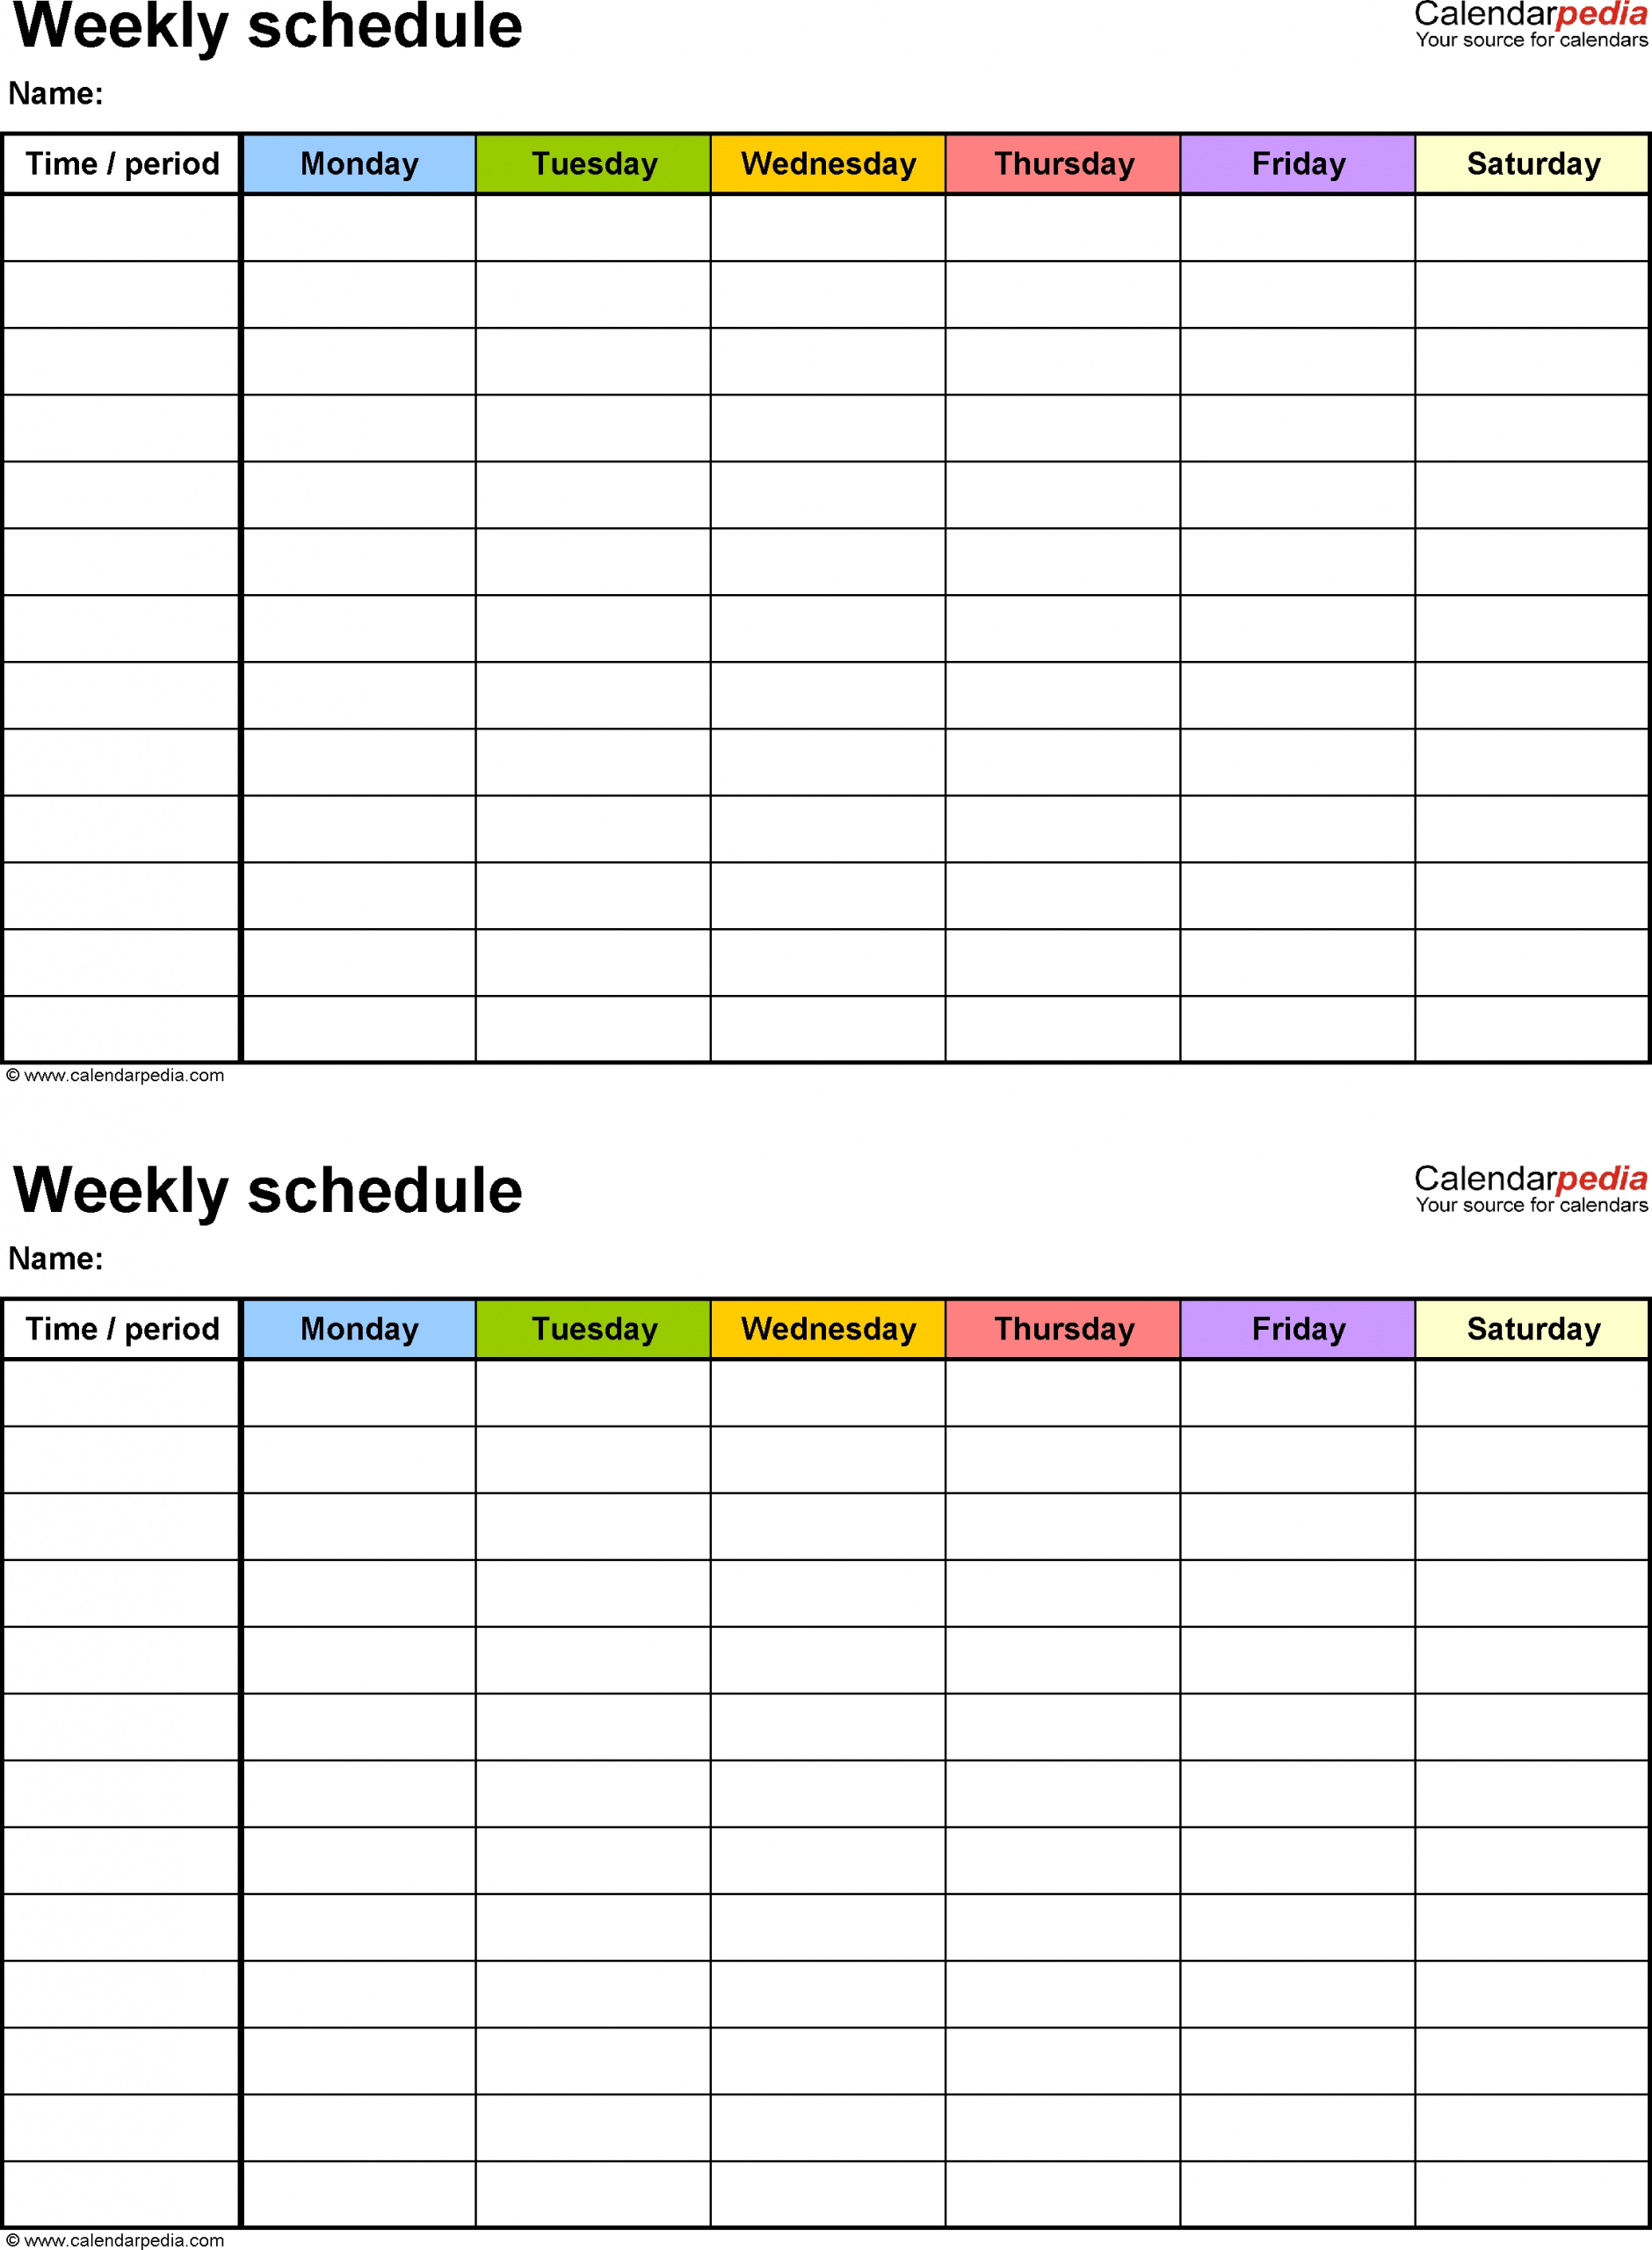 Pick 6 Week Blank Schedule Template E28b86 The Best Printable